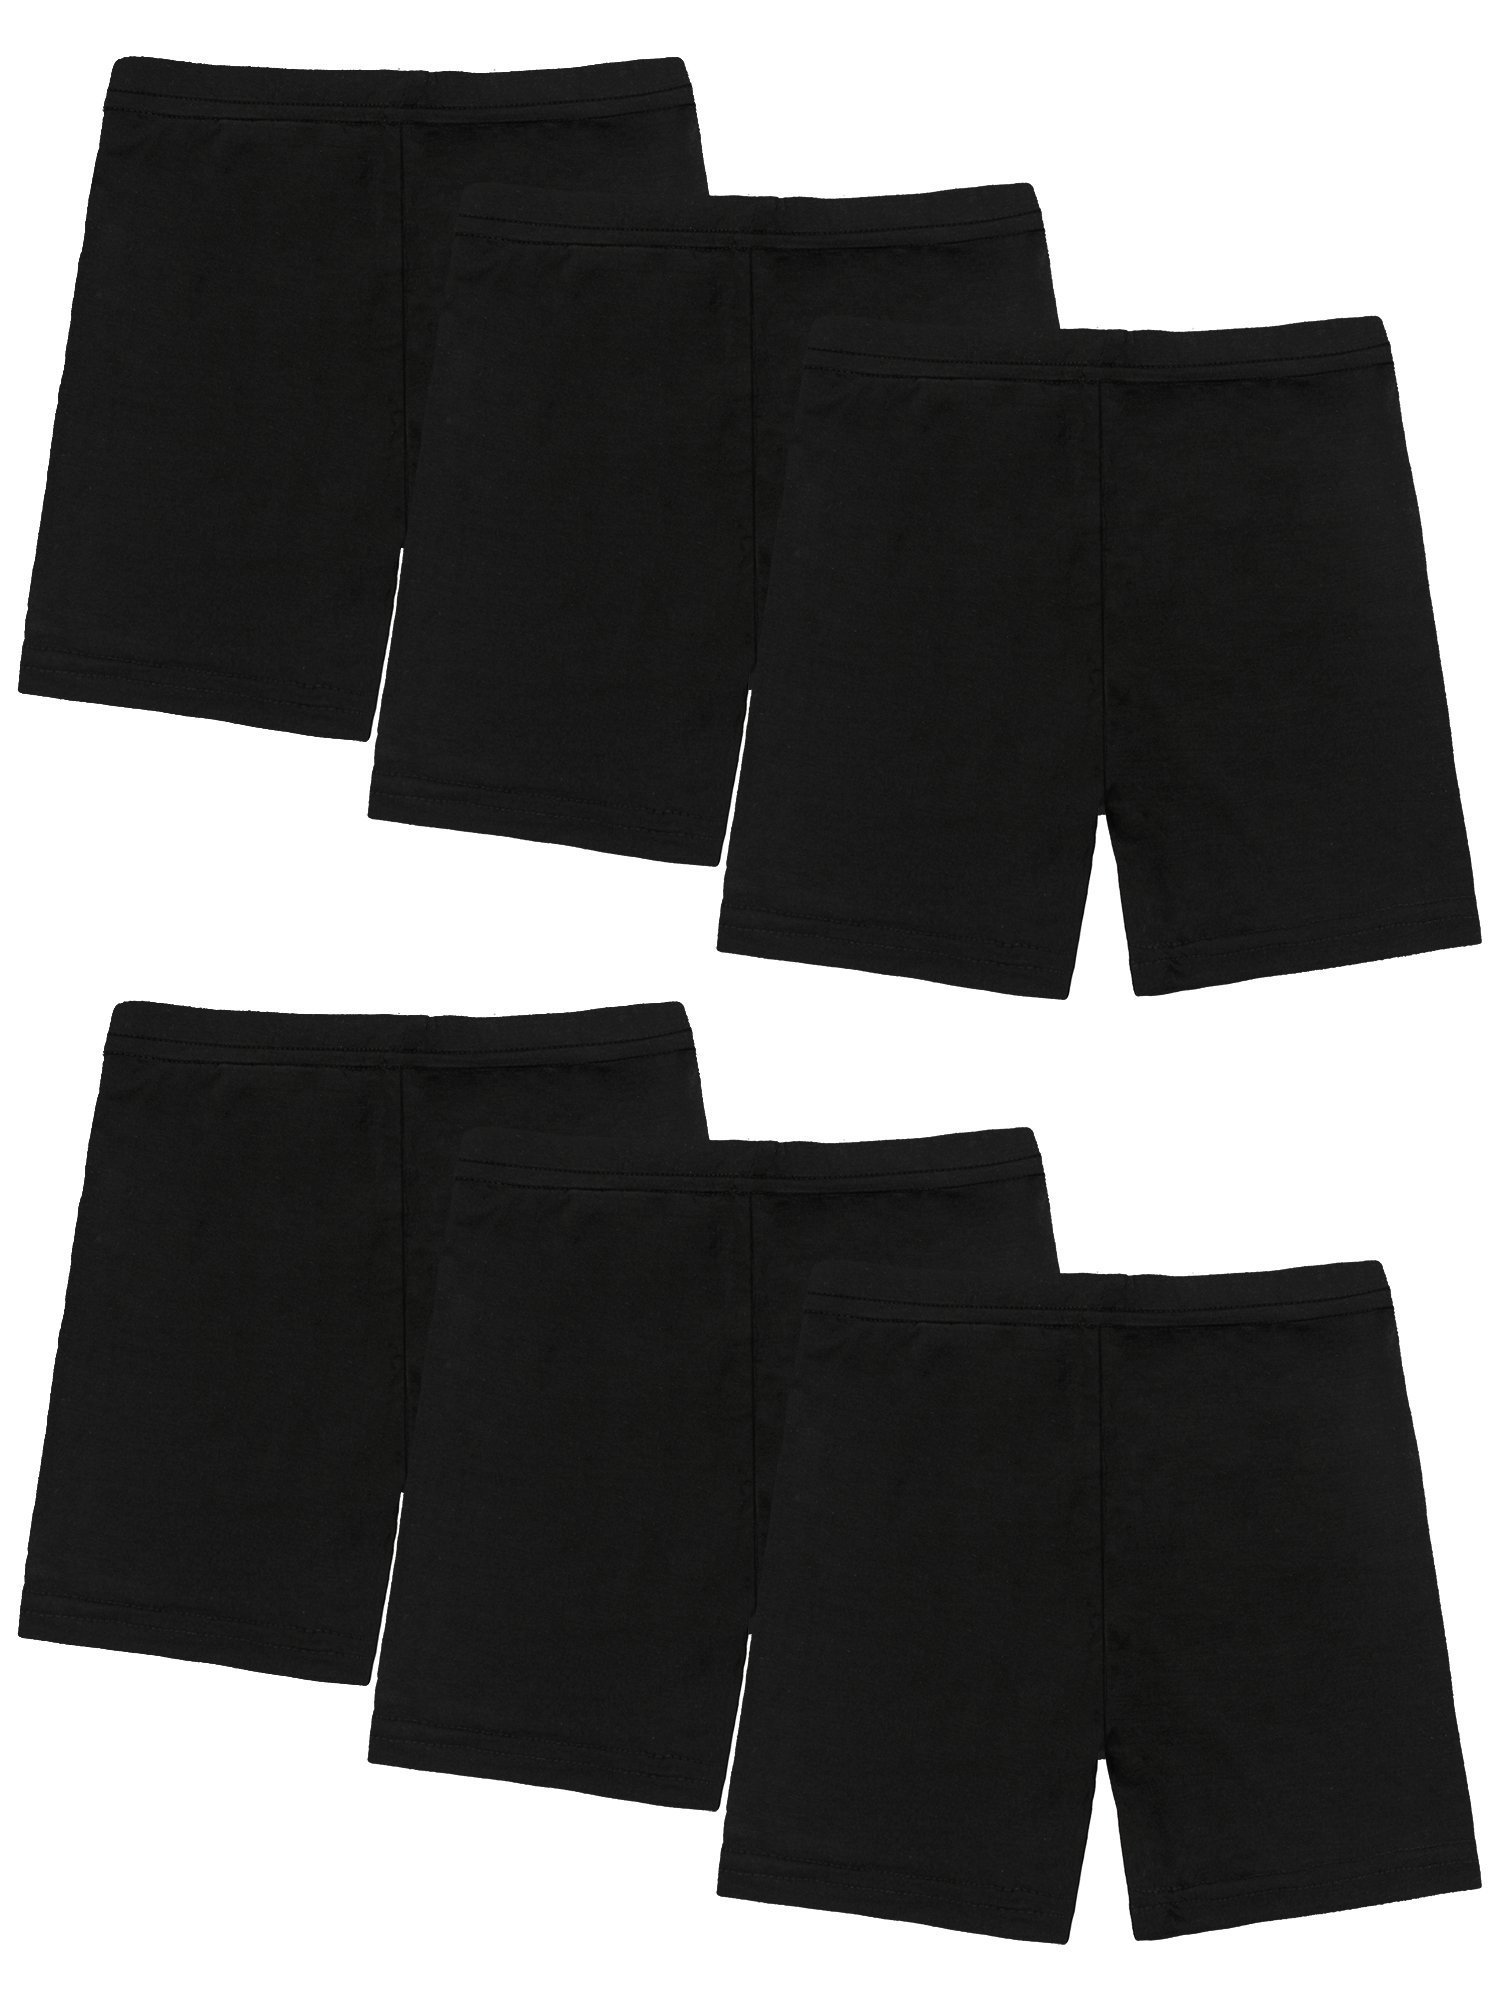 Resinta 6 Pack Black Dance Shorts Girls Bike Short Breathable and Safety 6 Color (8T/10T, Black) by Ruisita